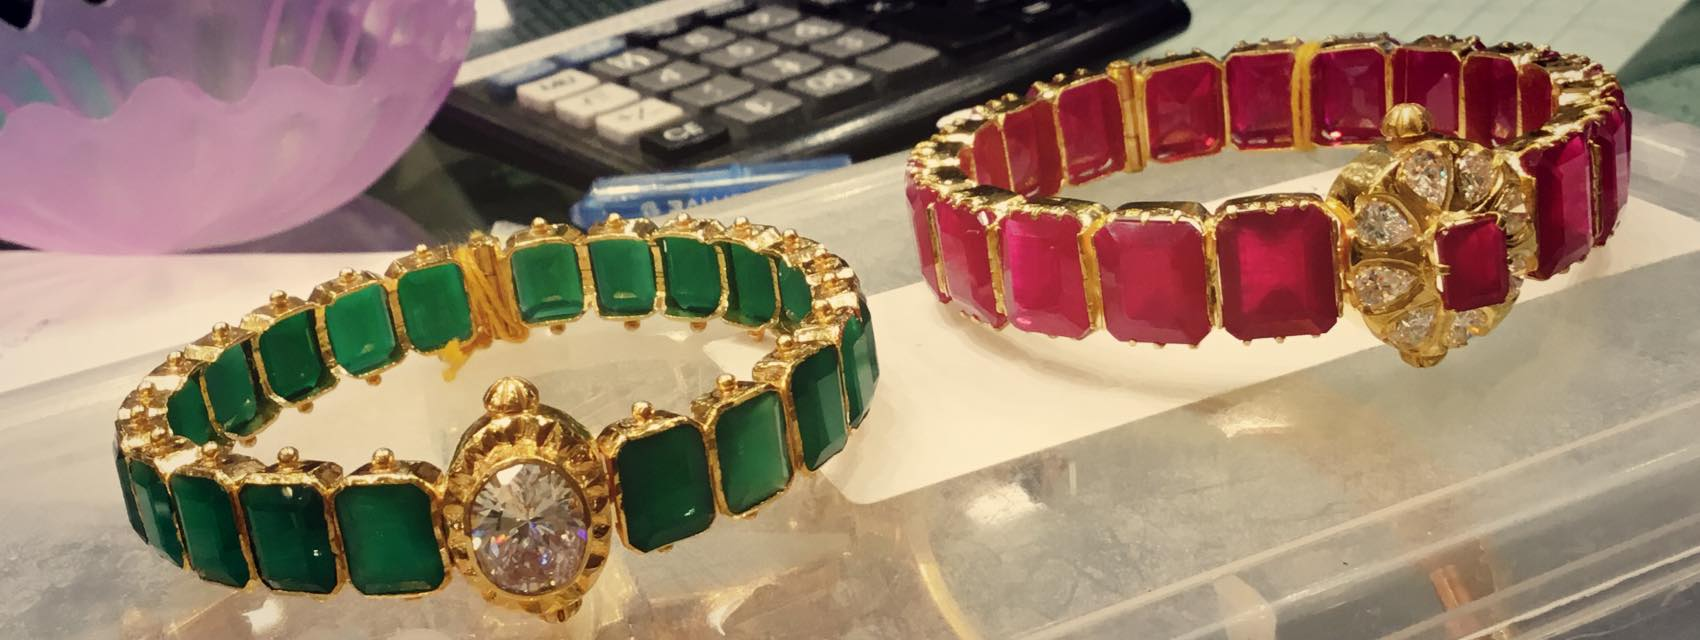 jewellery stones large bangles ruby emerald designs